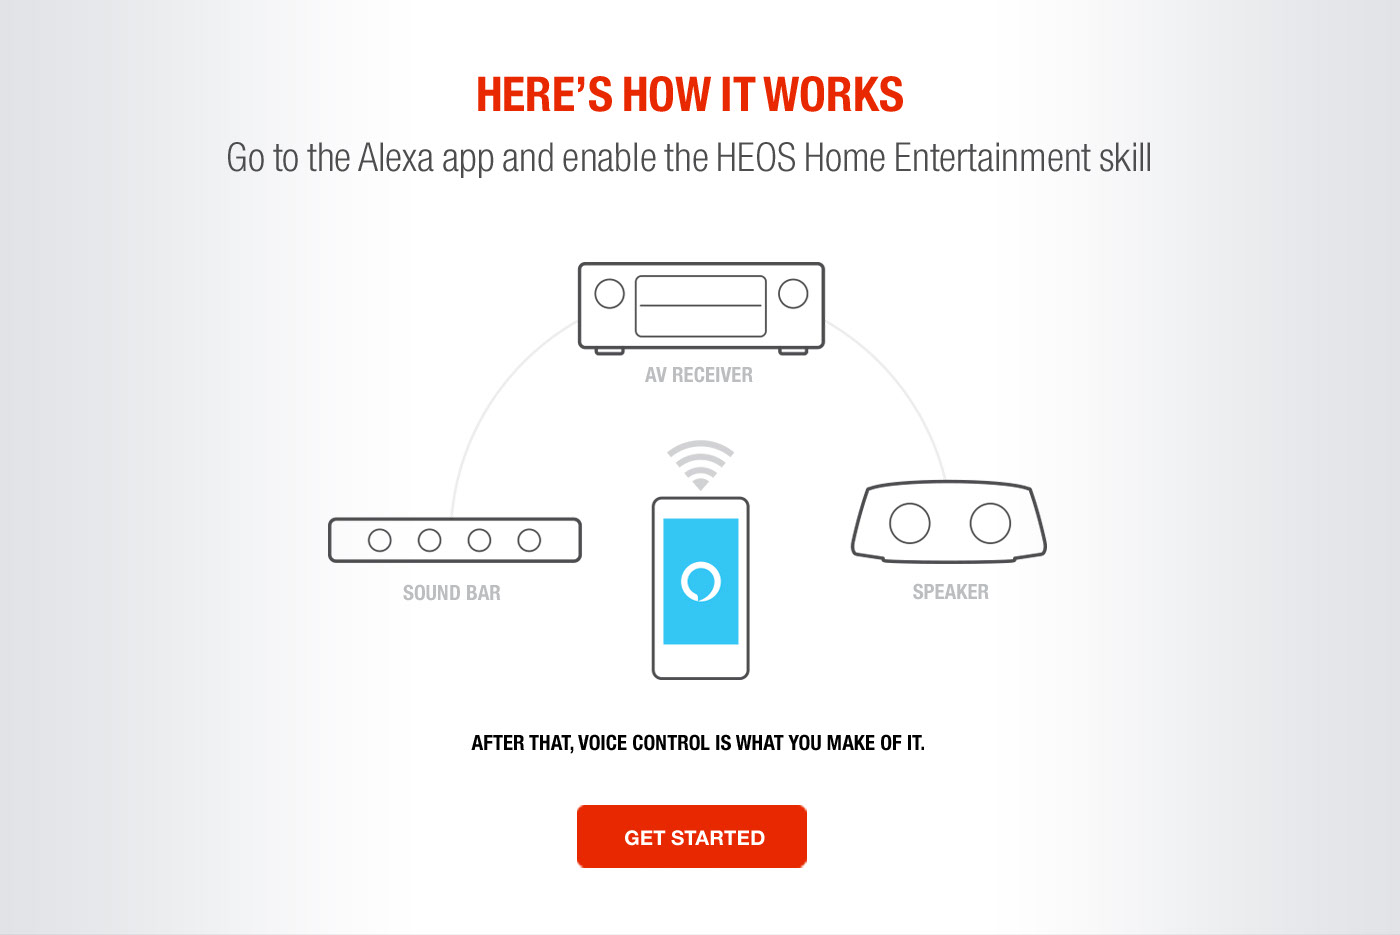 Go to the Alexa app and enable the HEOS Home Entertainment skill